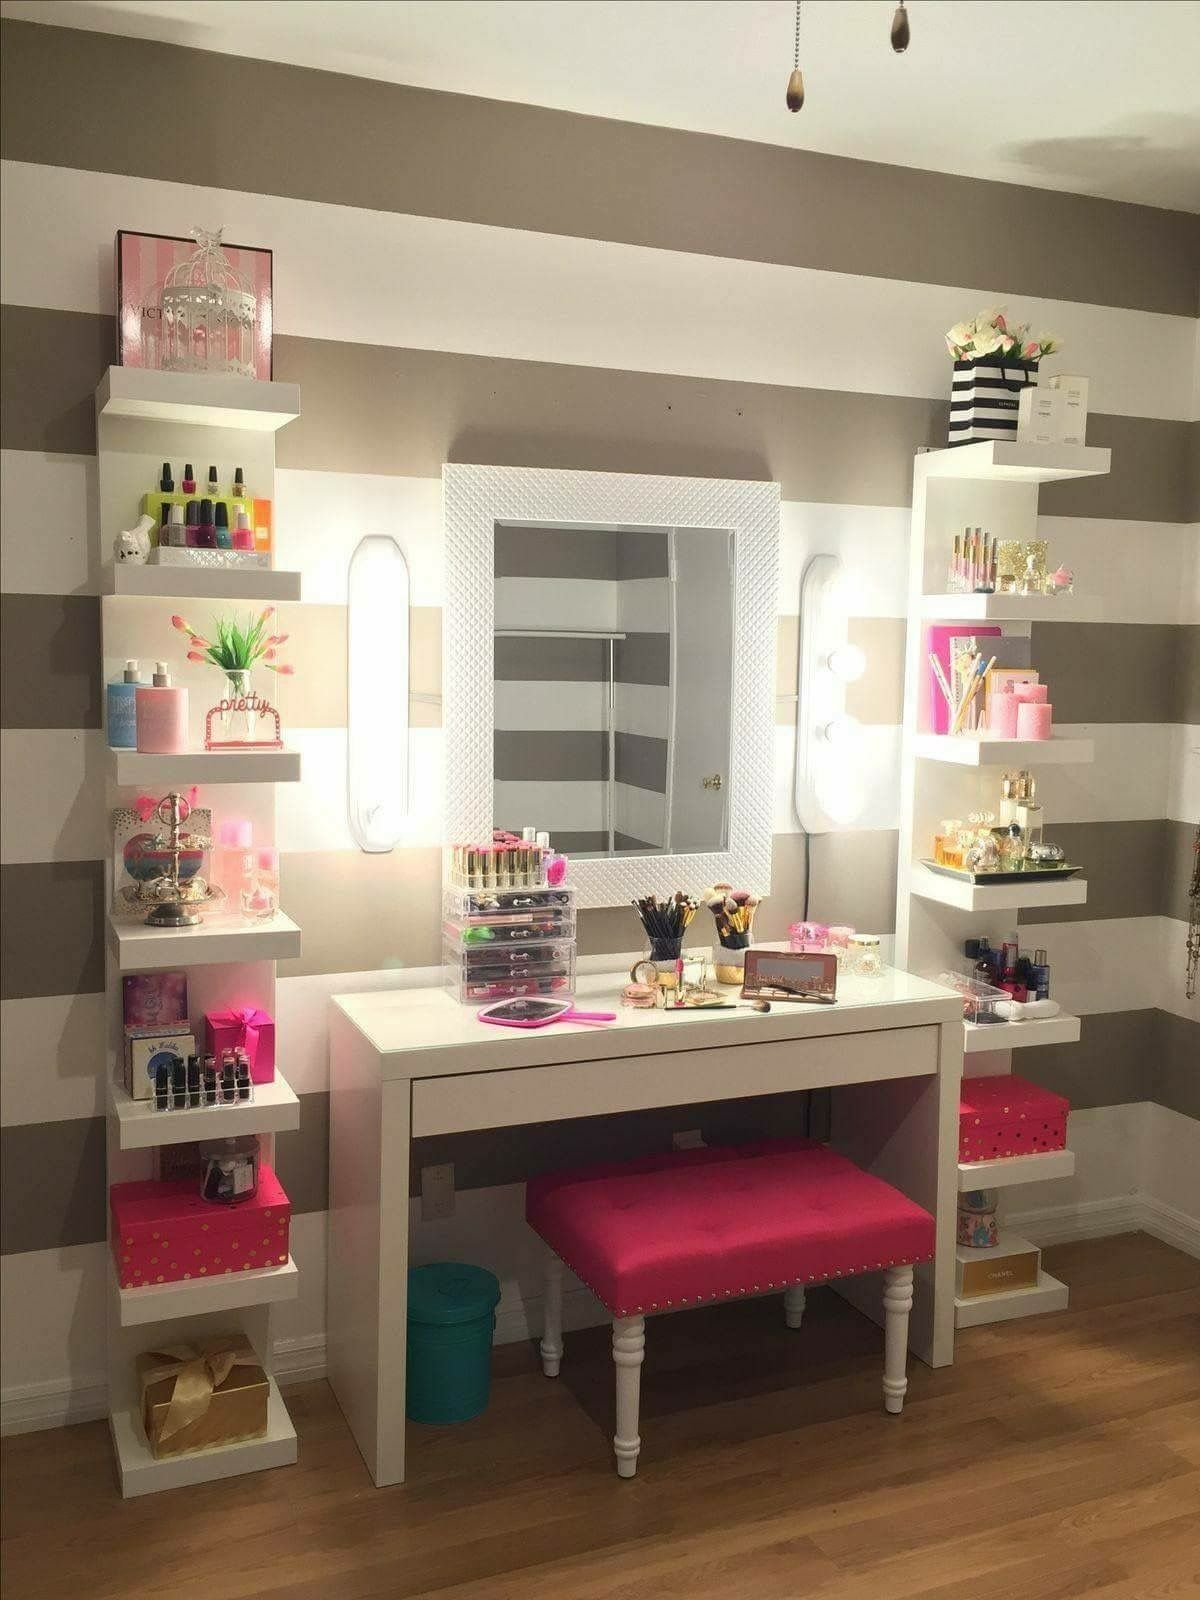 13 Beautiful Makeup Room Ideas Organizer and Decorating organizerideasroom #style #shopping #styles #outfit #pretty #girl #girls #beauty #beautiful #me #cute #stylish #photooftheday #swag #dress #shoes #diy #design #fashion #Makeup